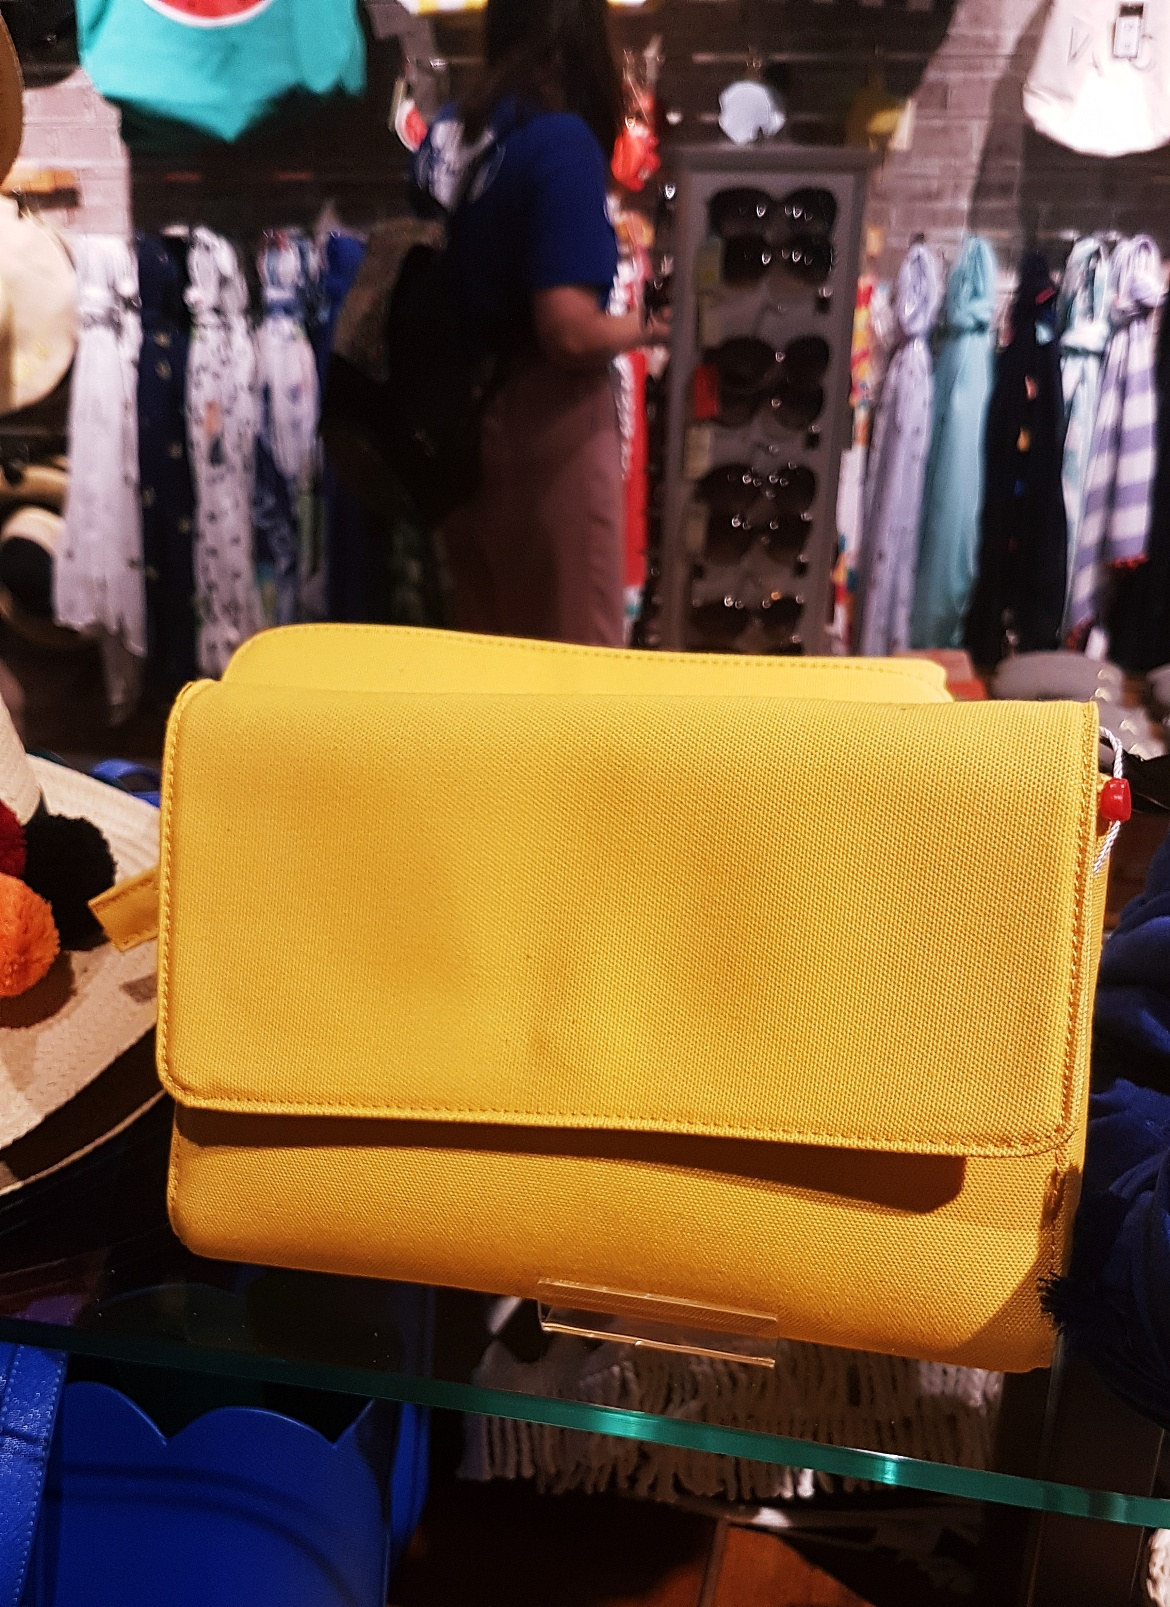 Little yellow bag - Tune in with Joy the Store, Leeds shop review by BeckyBecky Blogs